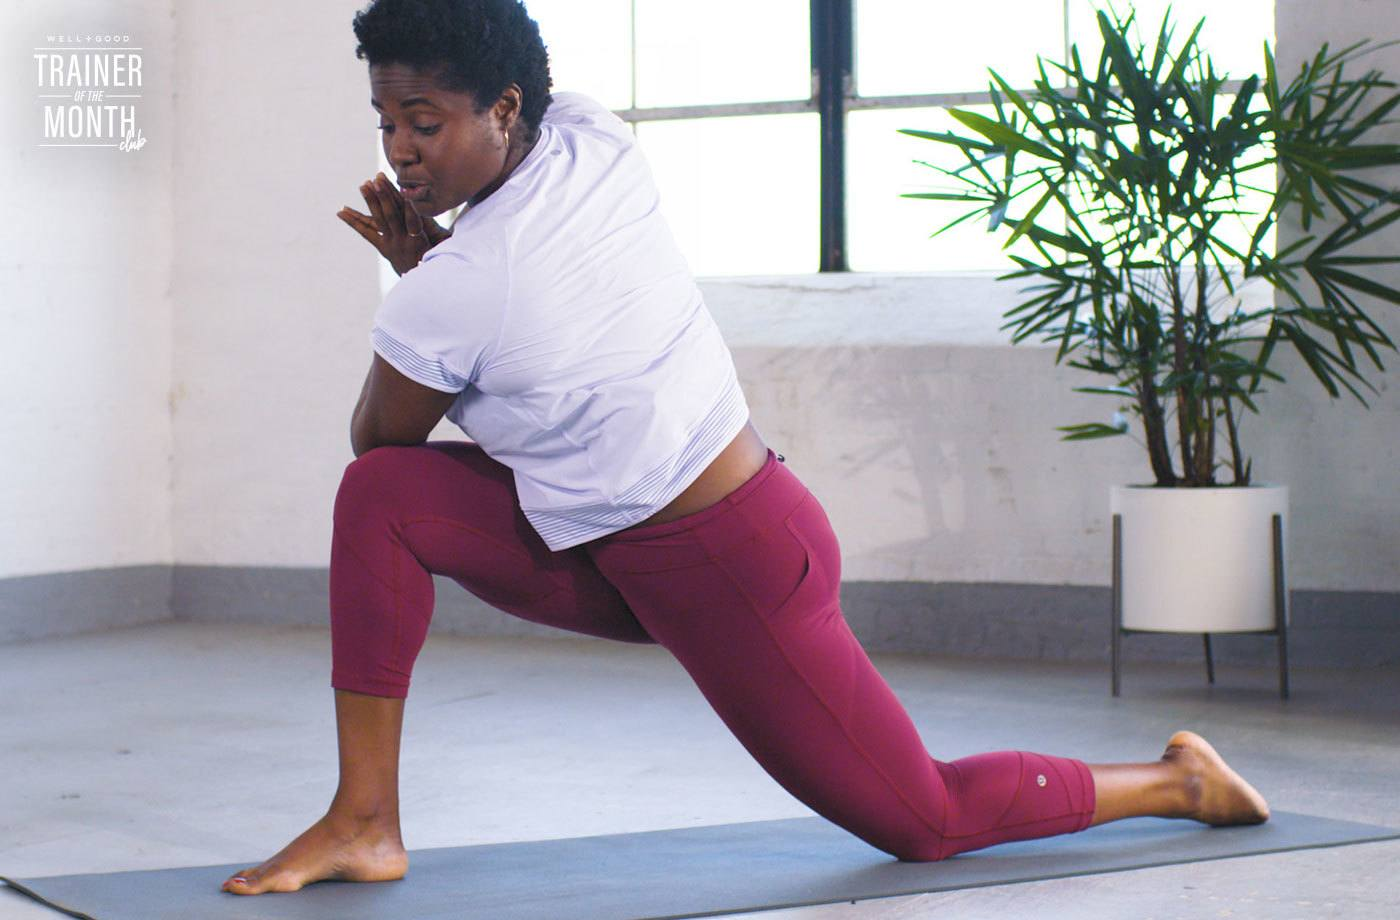 This 7-minute heart-opening yoga flow will relieve tension from hunching over a computer all day